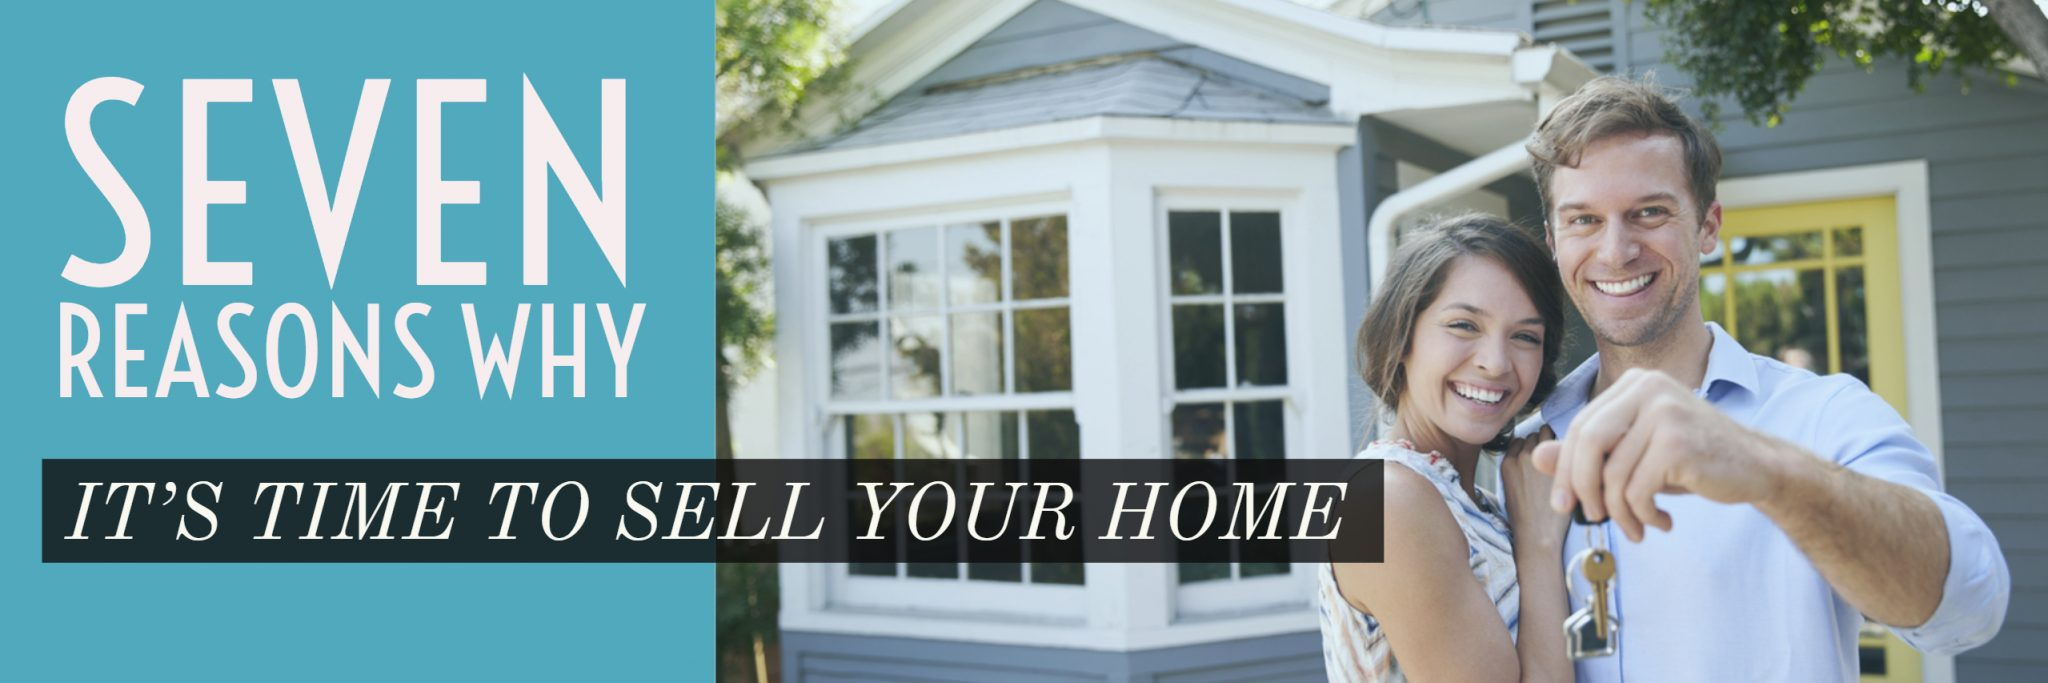 Seven Reasons Why It's Time To Sell Your Home